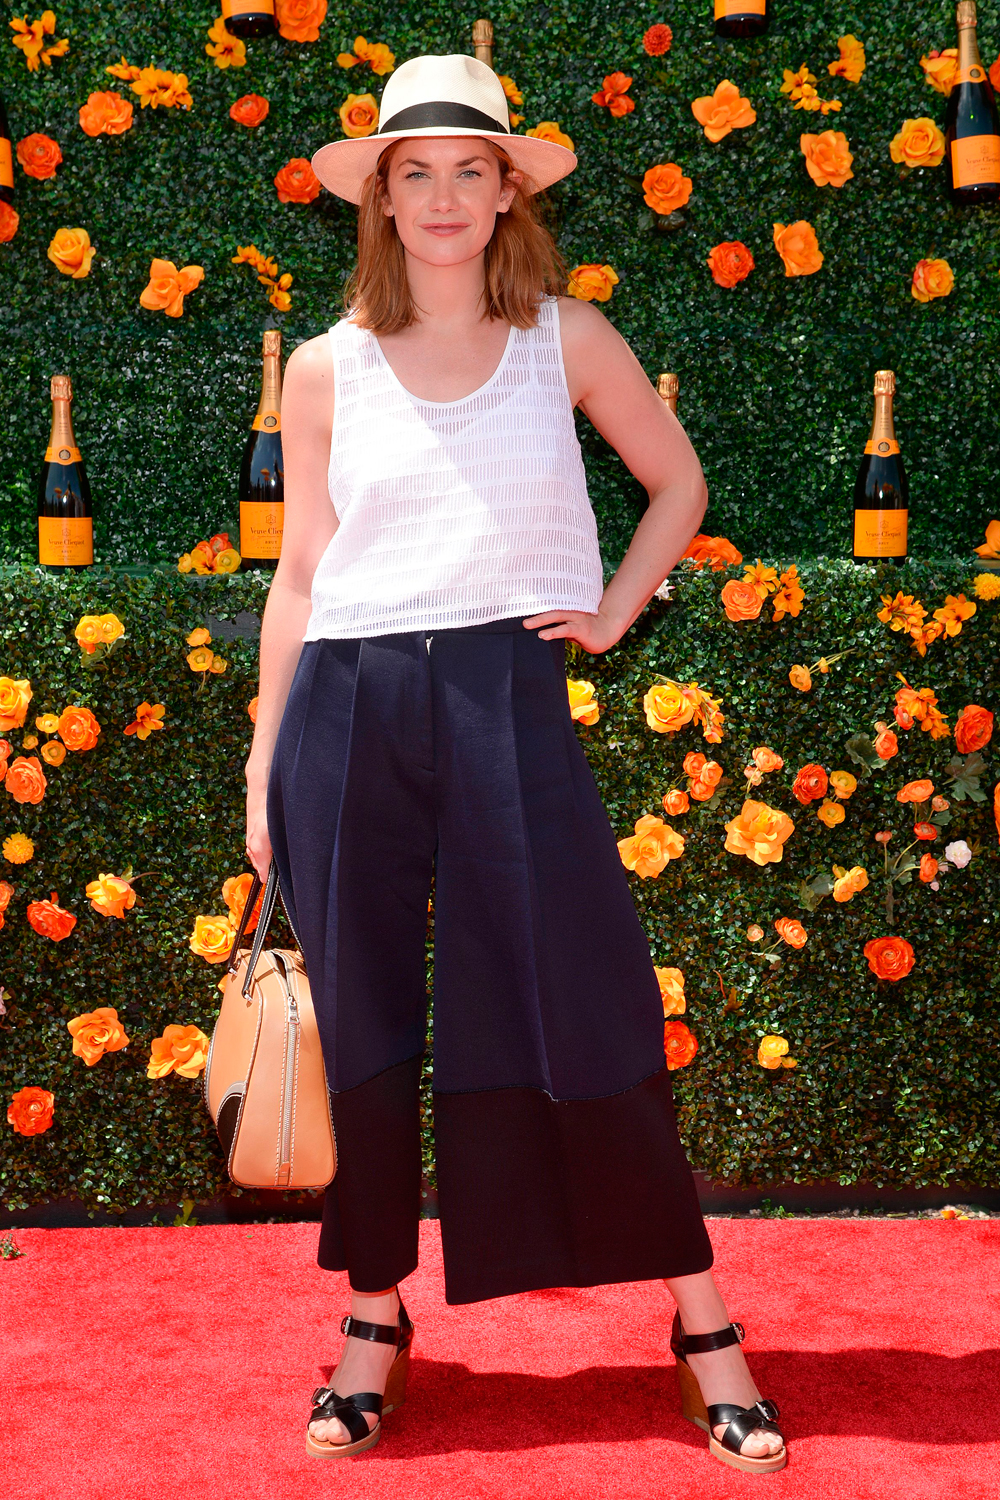 The Best Celebrity Looks From The Veuve Clicquot And Audi Polo This Weekend